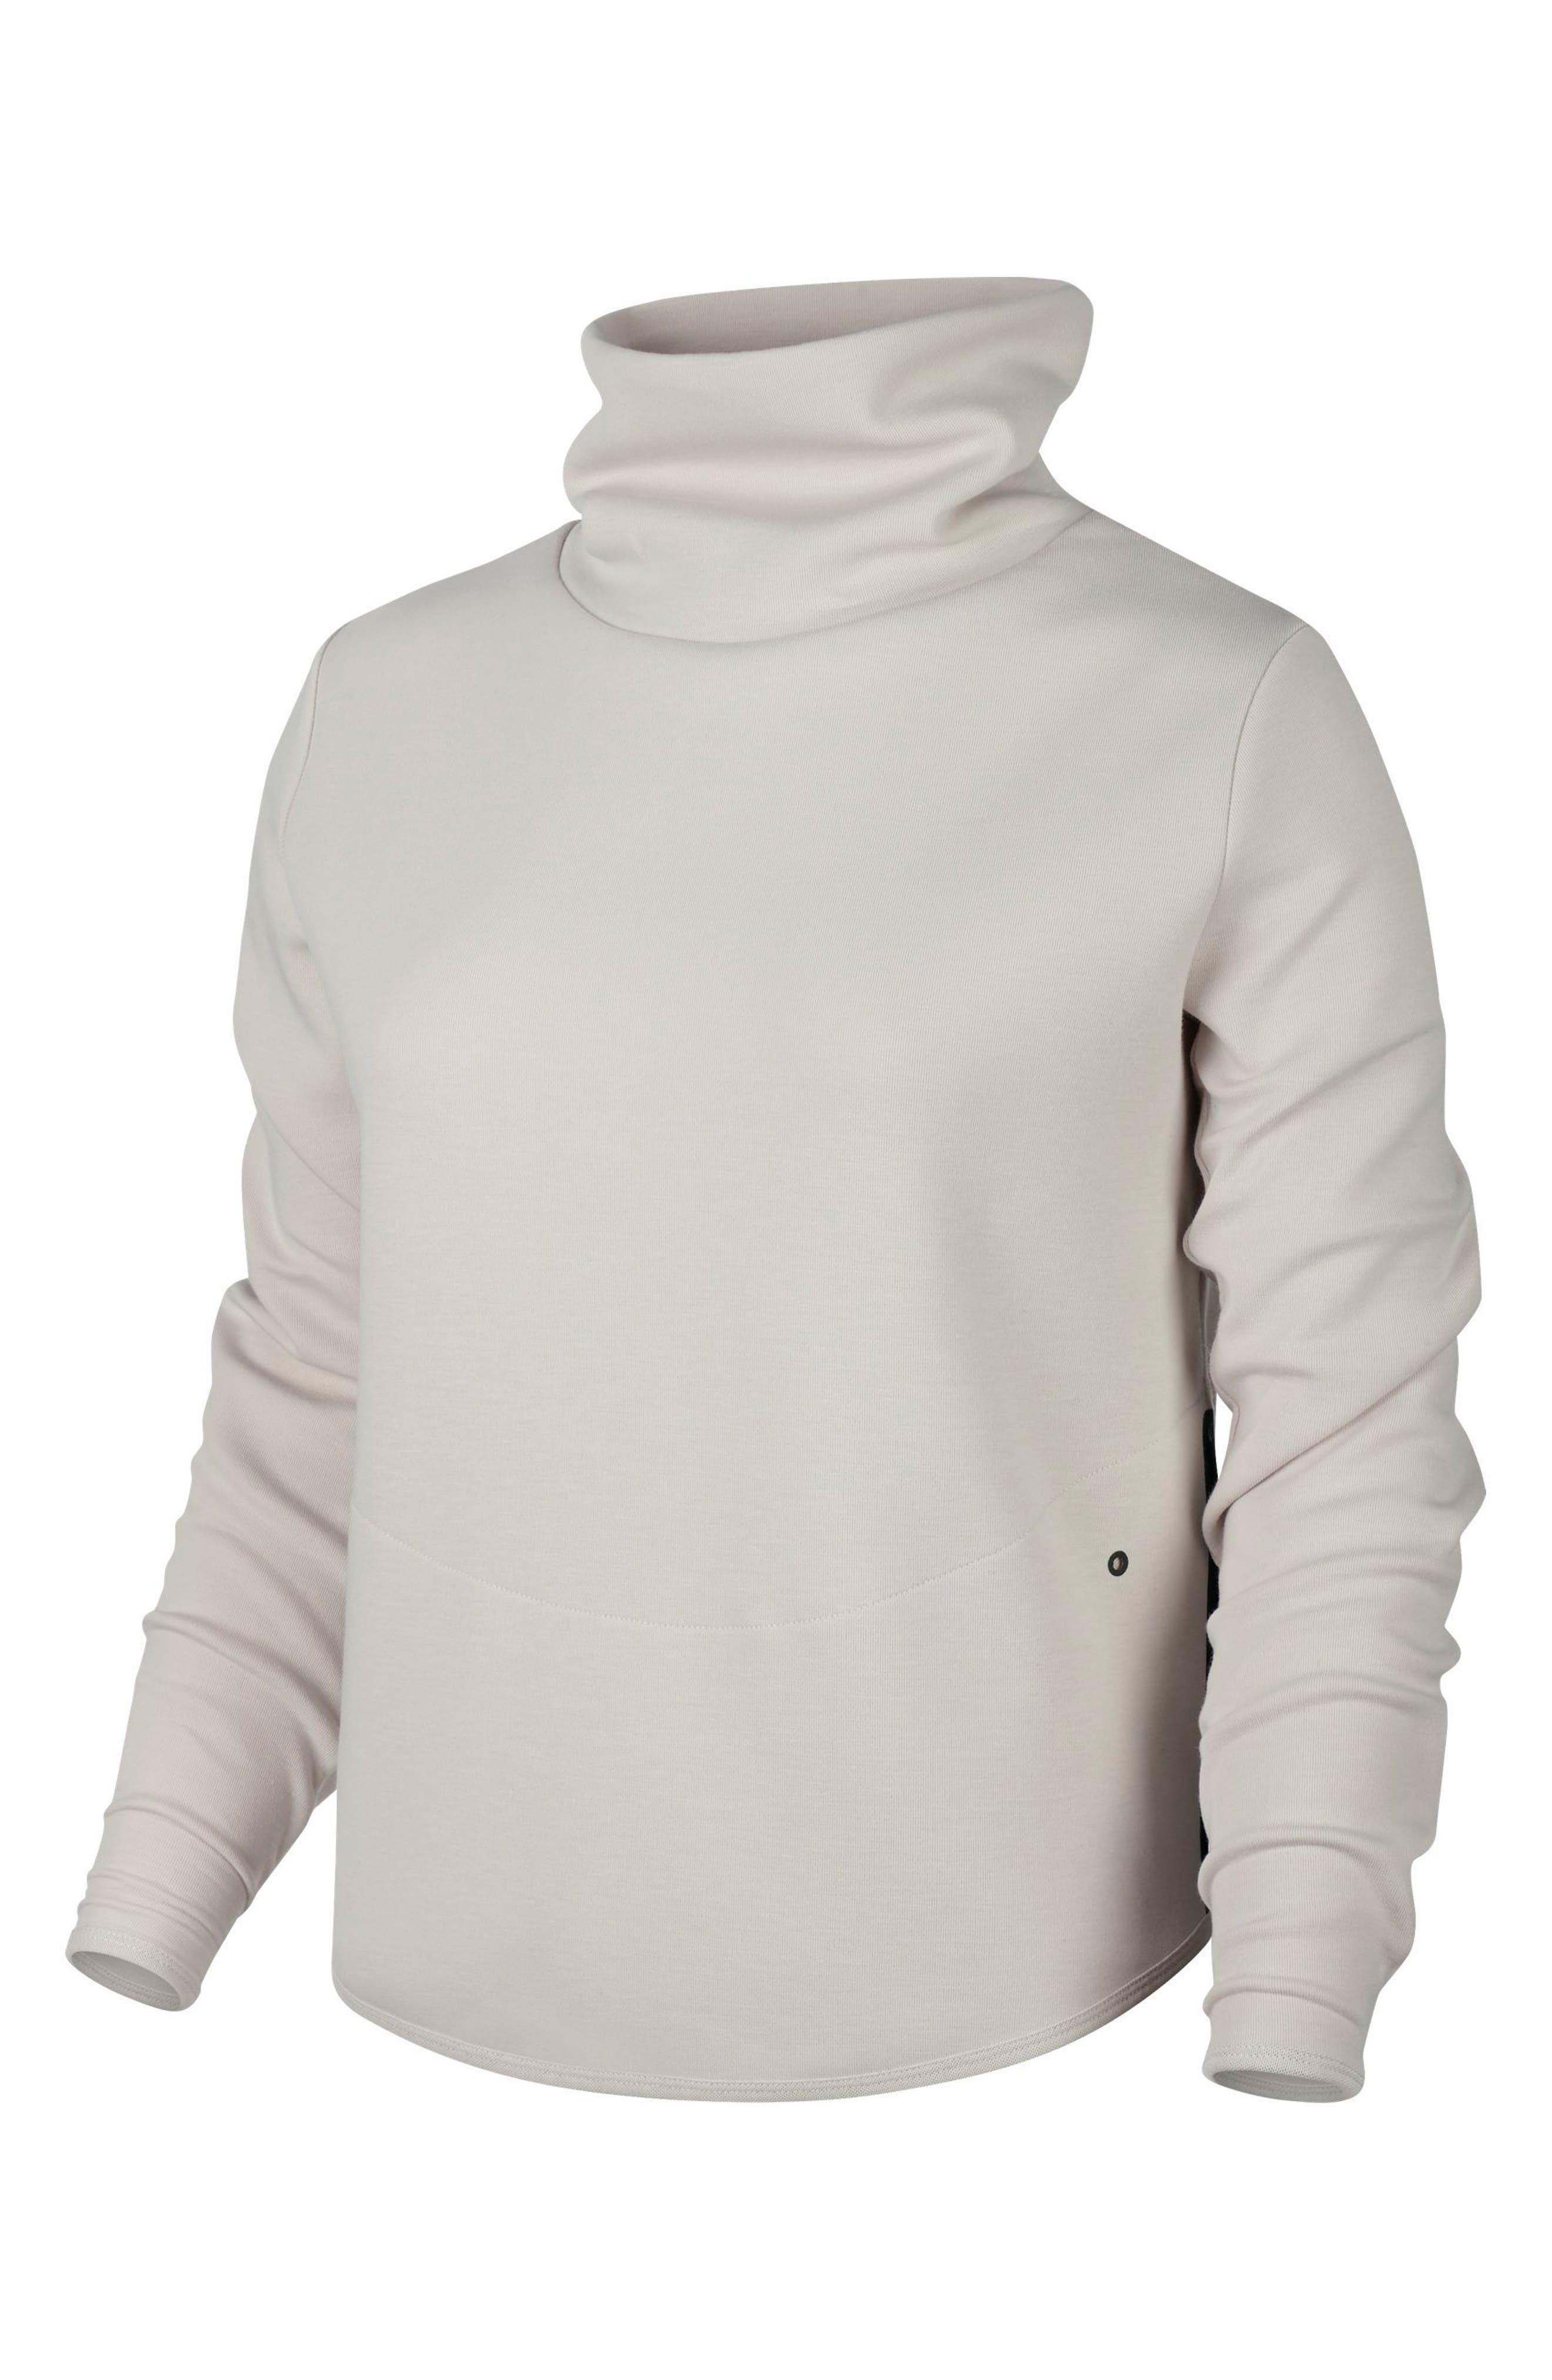 Women's Thermal Pullover Training Top,                             Main thumbnail 1, color,                             102